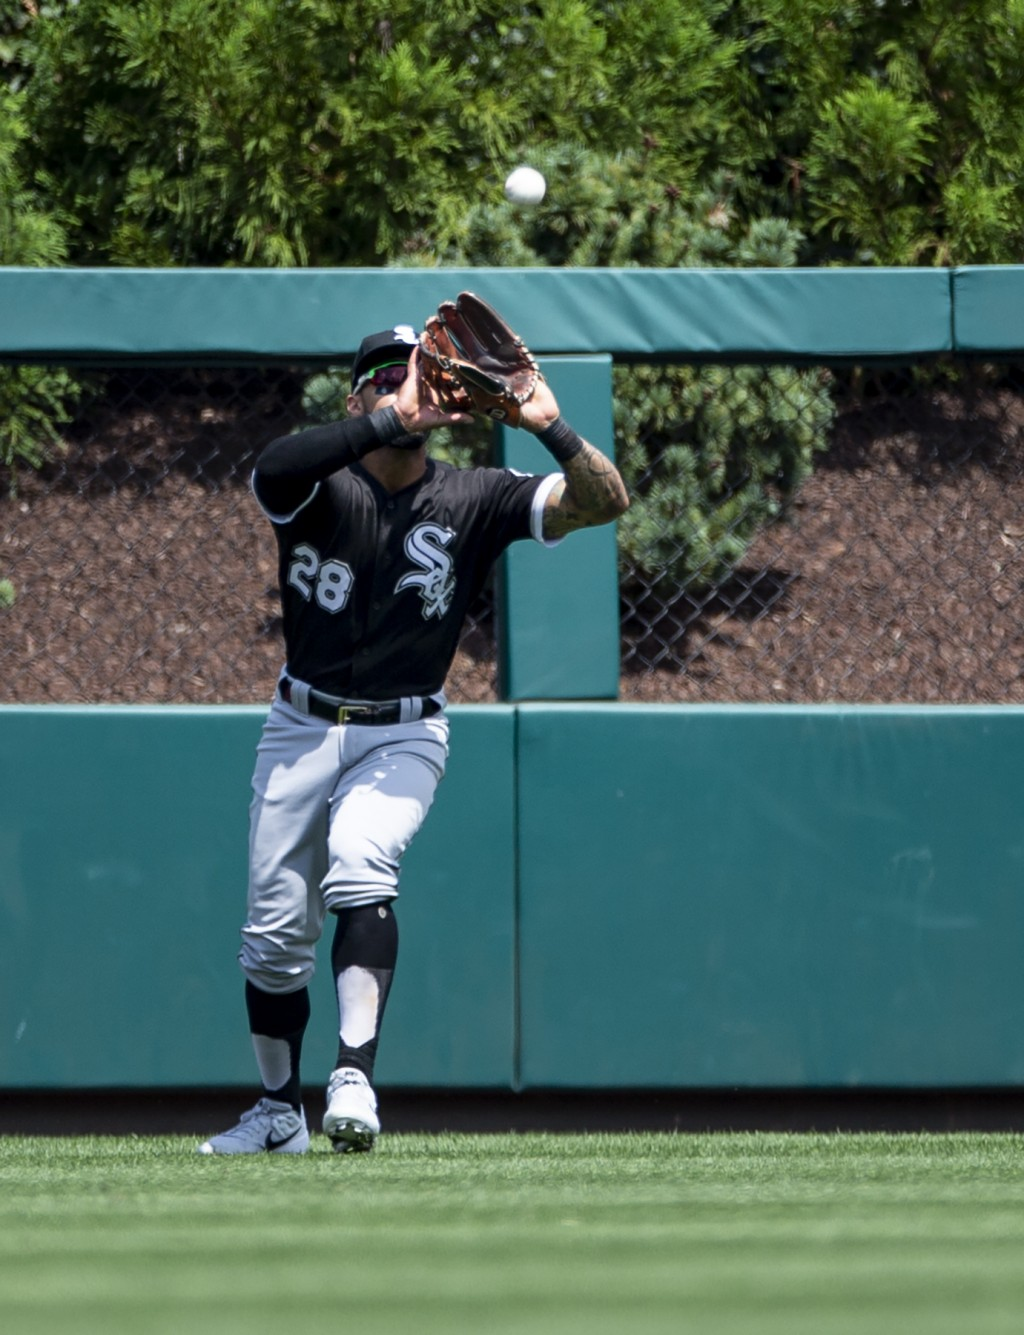 Chicago White Sox center fielder Leury Garcia catches a fly ball hit by Philadelphia Phillies' Jean Segura during the first inning of a baseball game,...